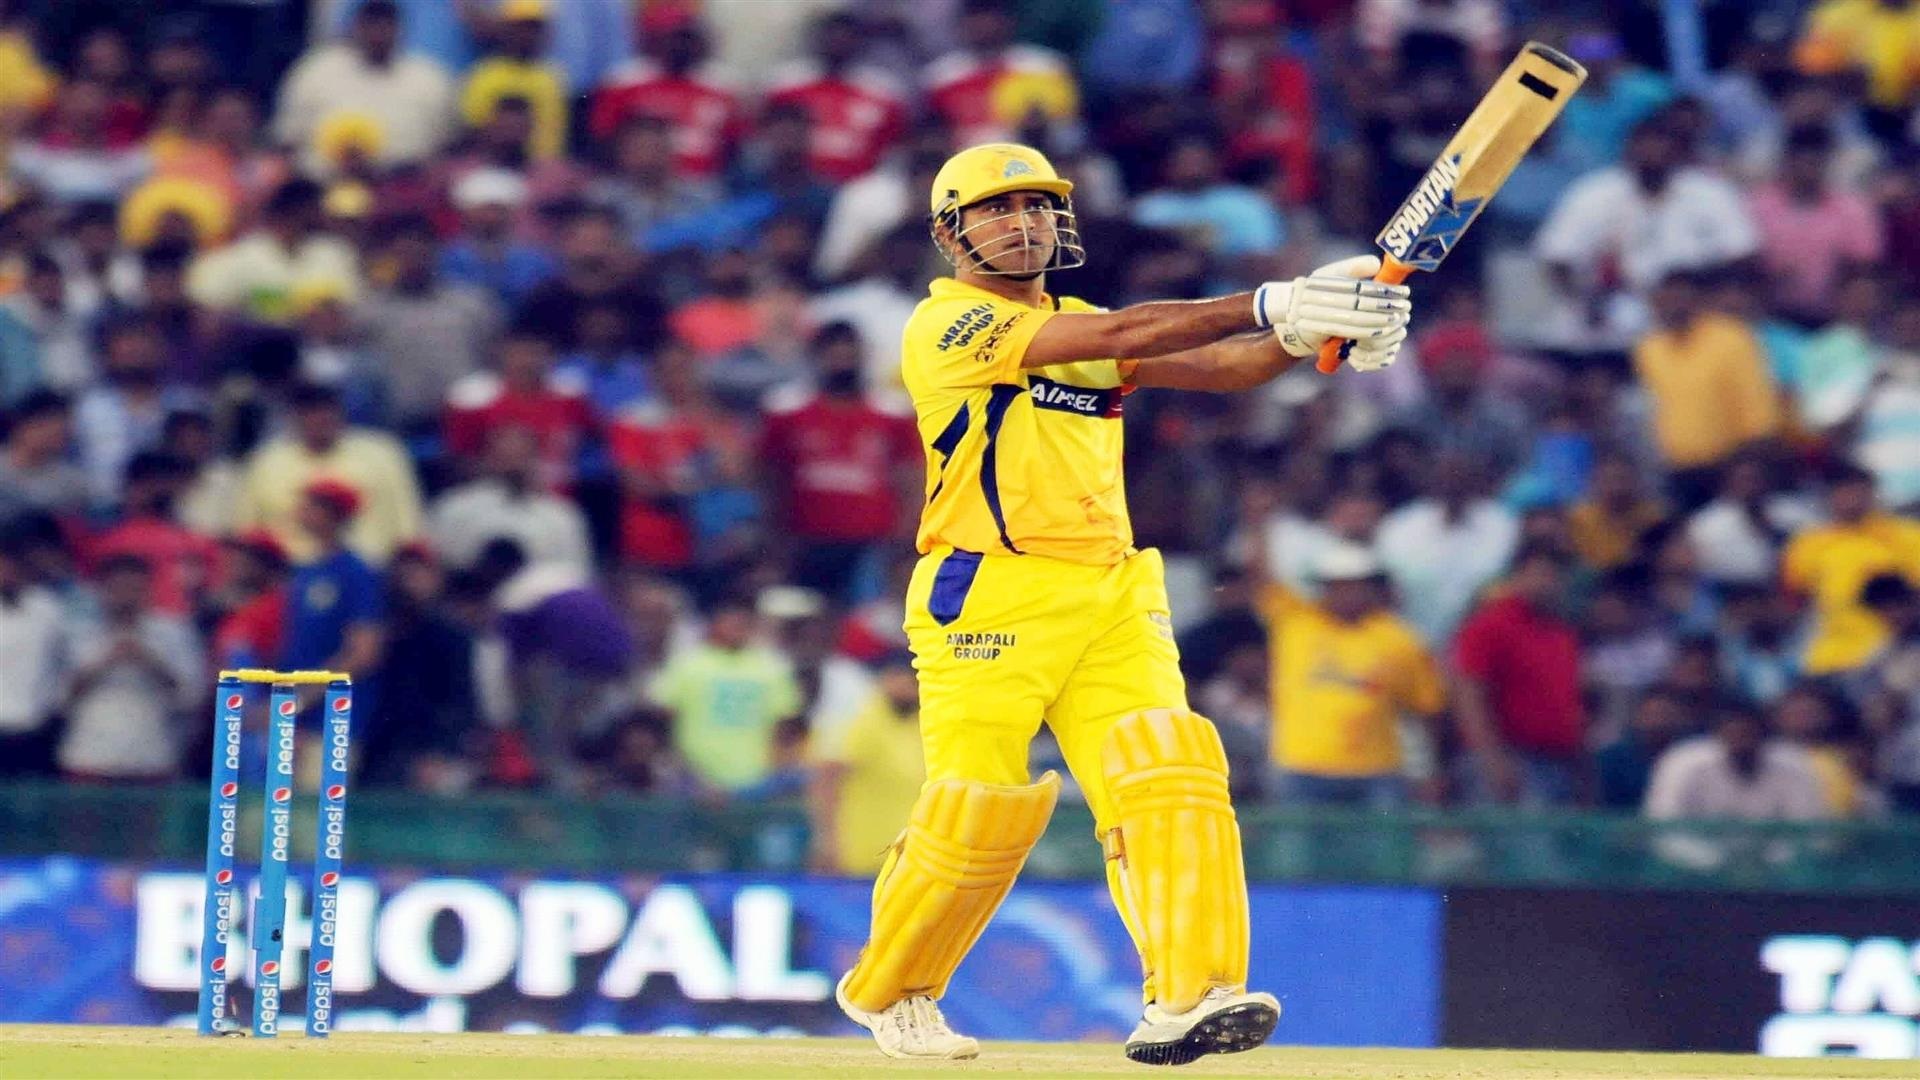 1920x1080 MS Dhoni in CSK IPL Match Wallpaper